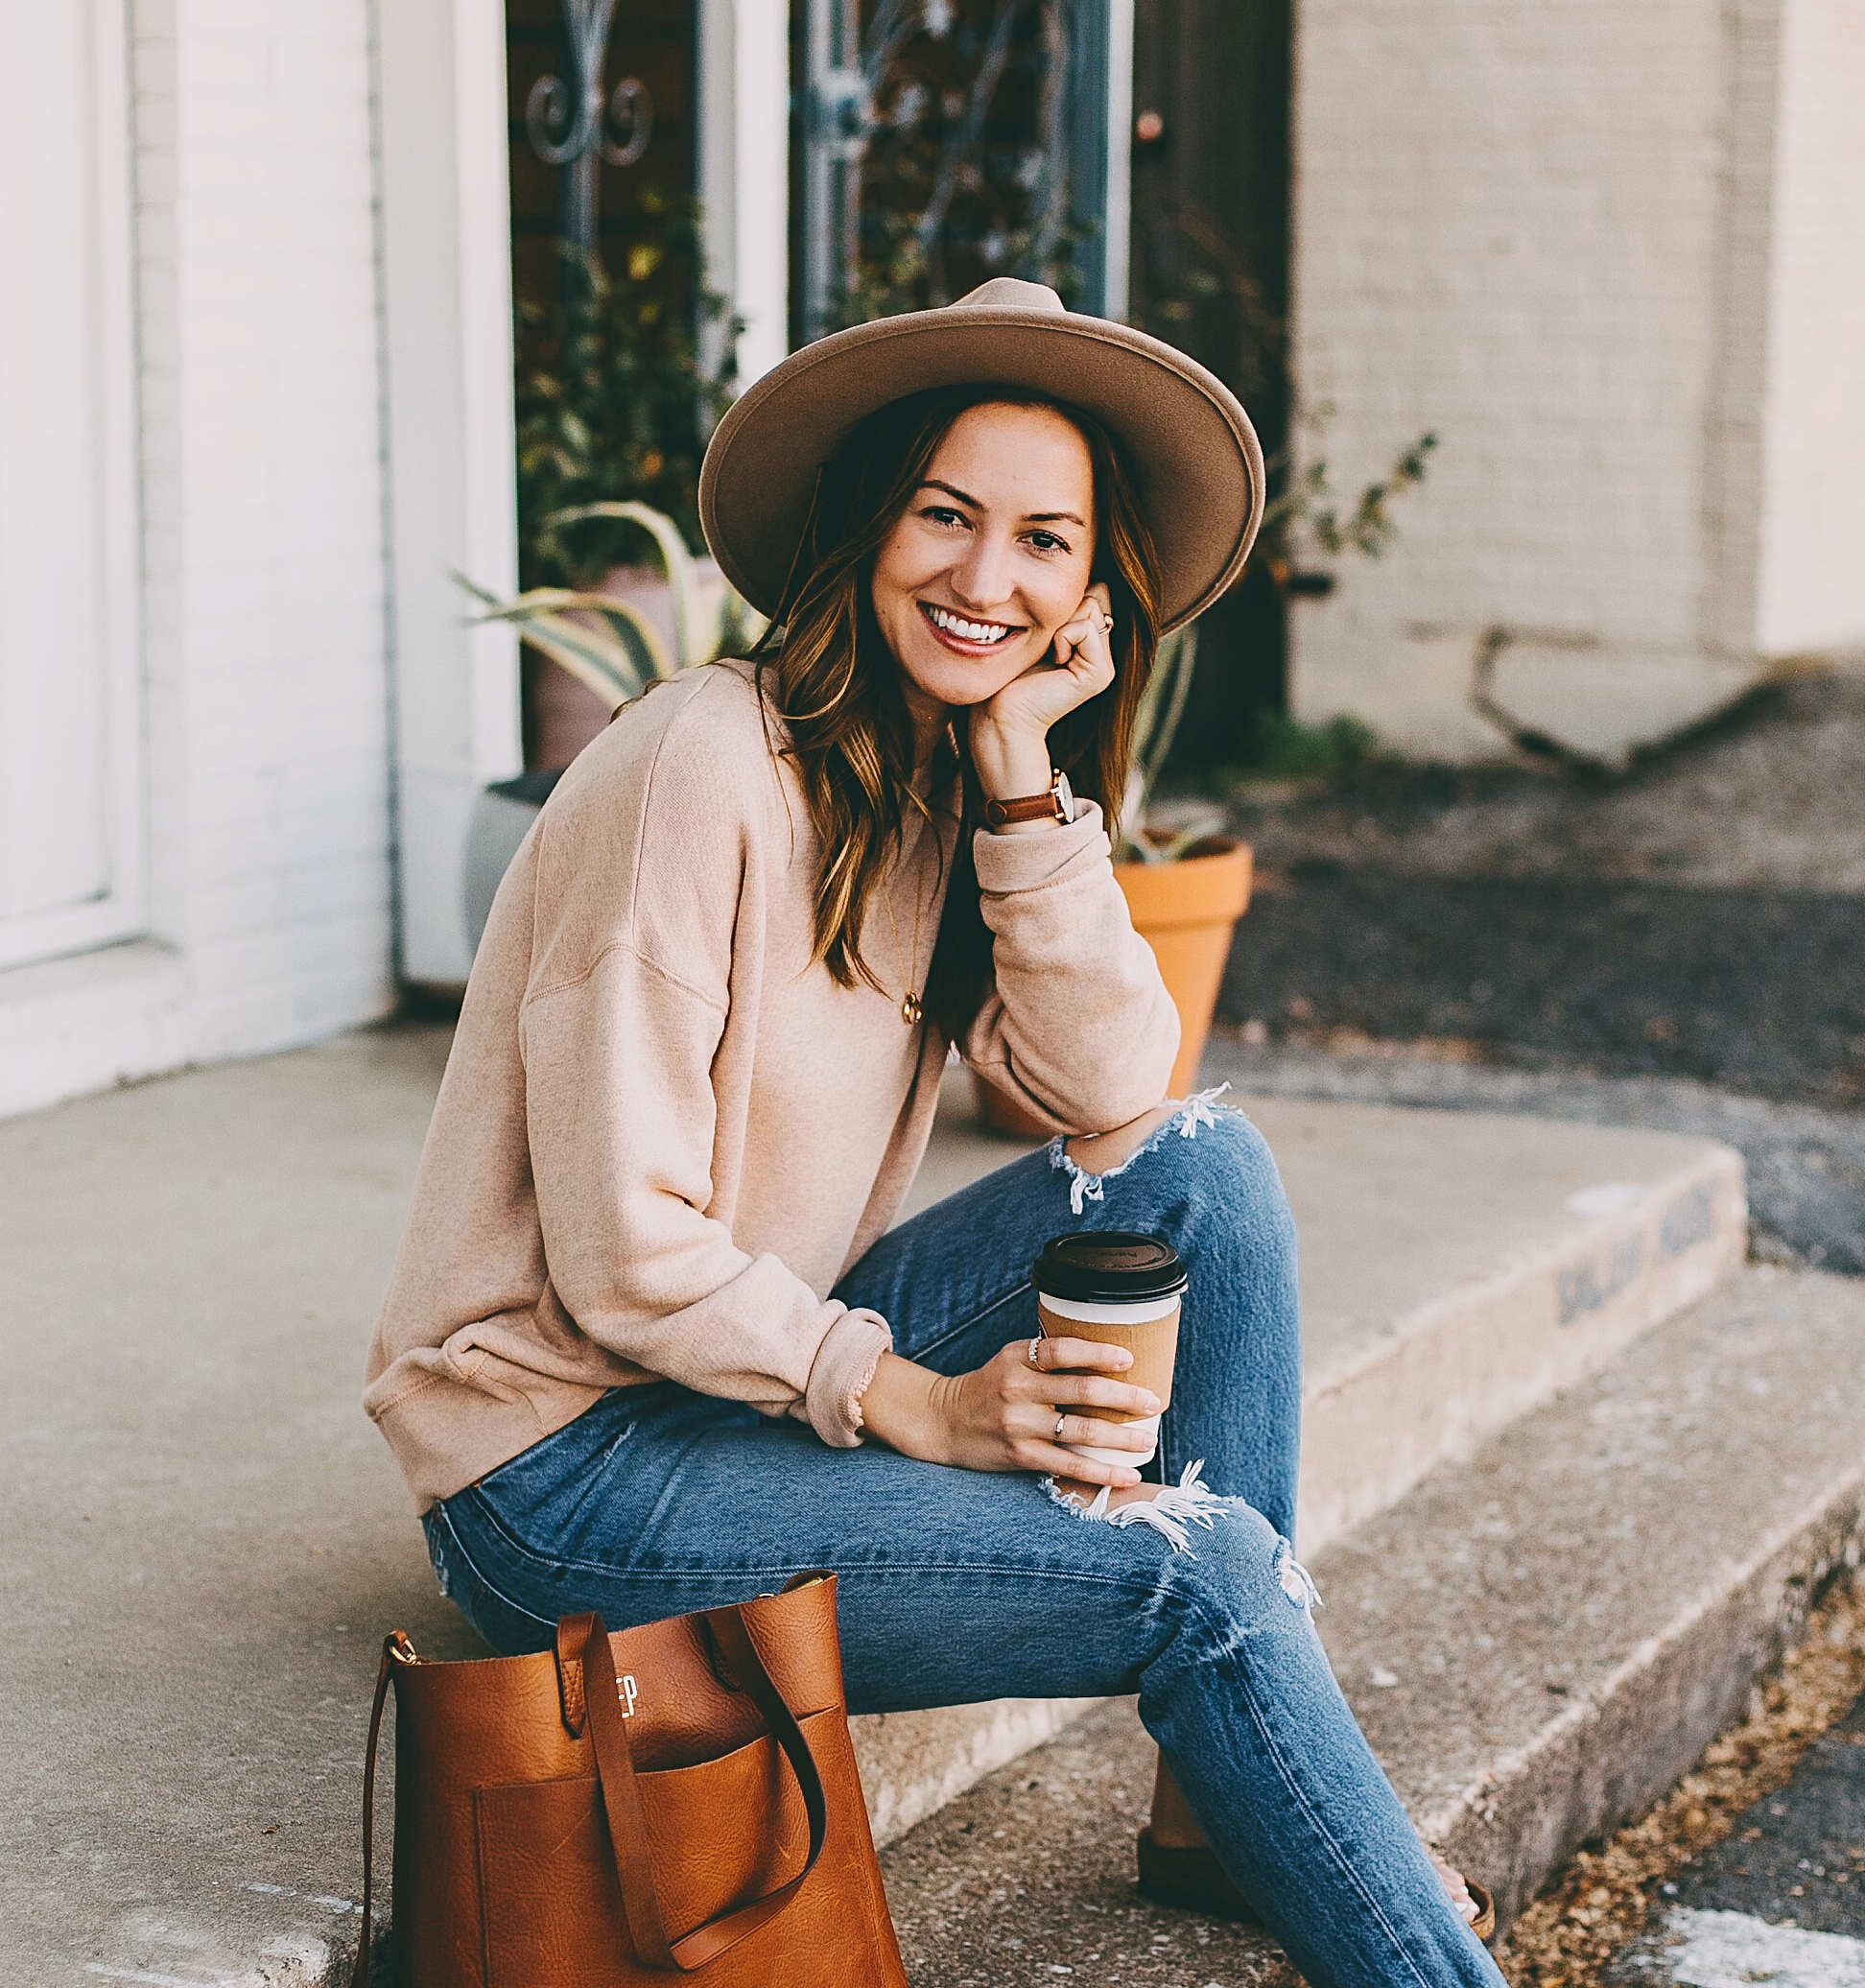 All The Feels - LivvyLand | Austin Fashion and Style Blogger